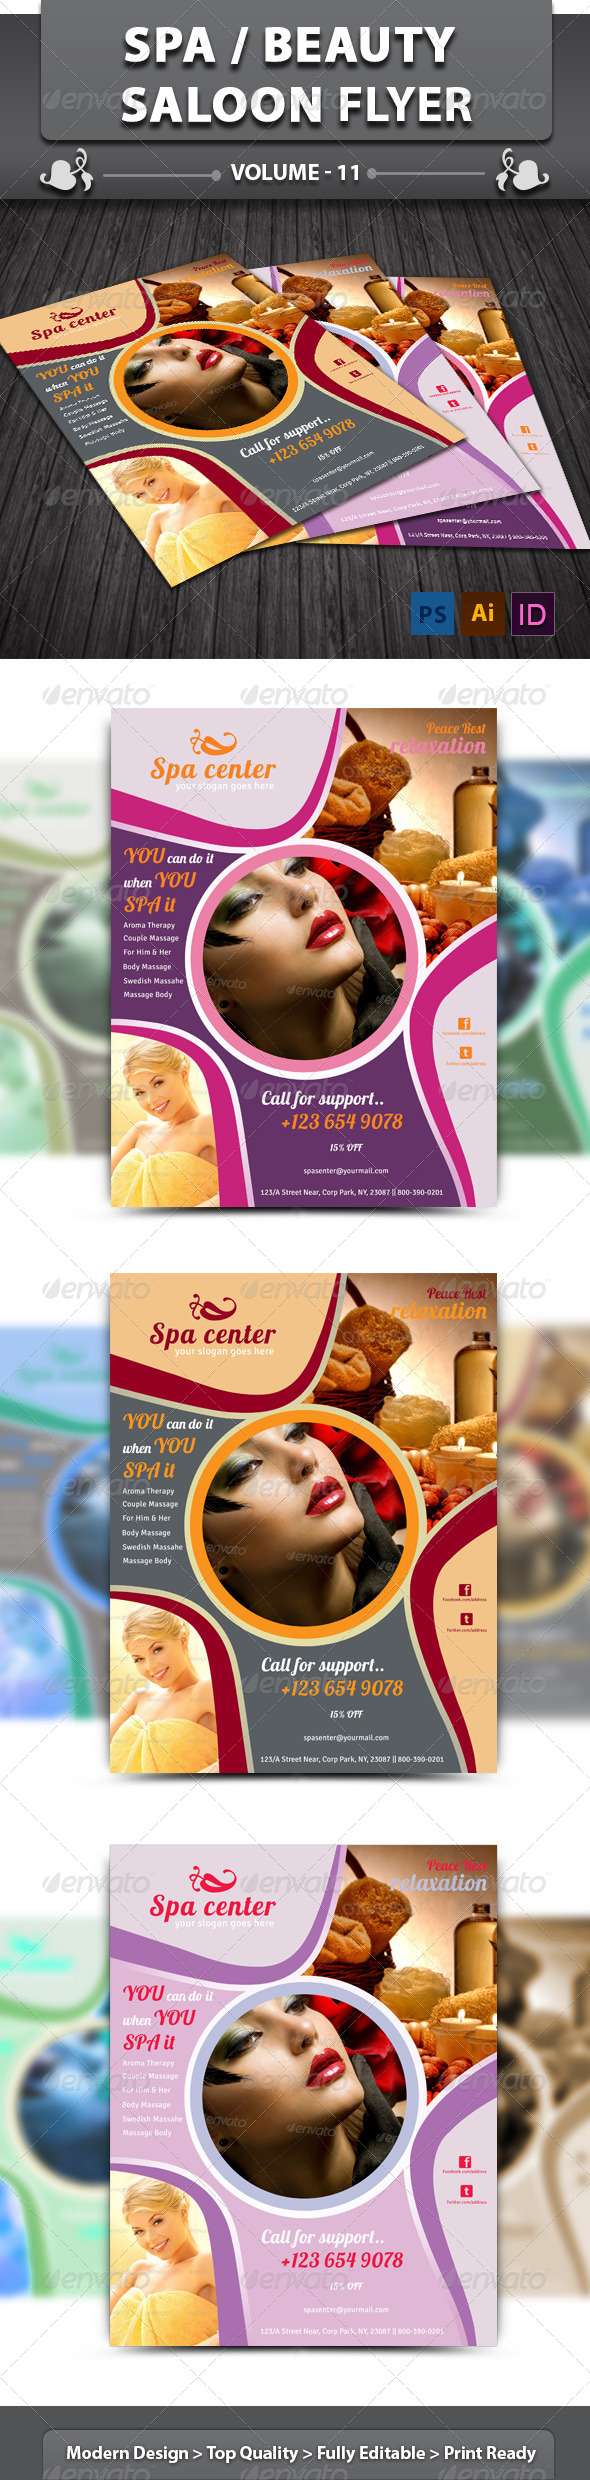 GraphicRiver Spa Beauty Saloon Flyer v11 6387615